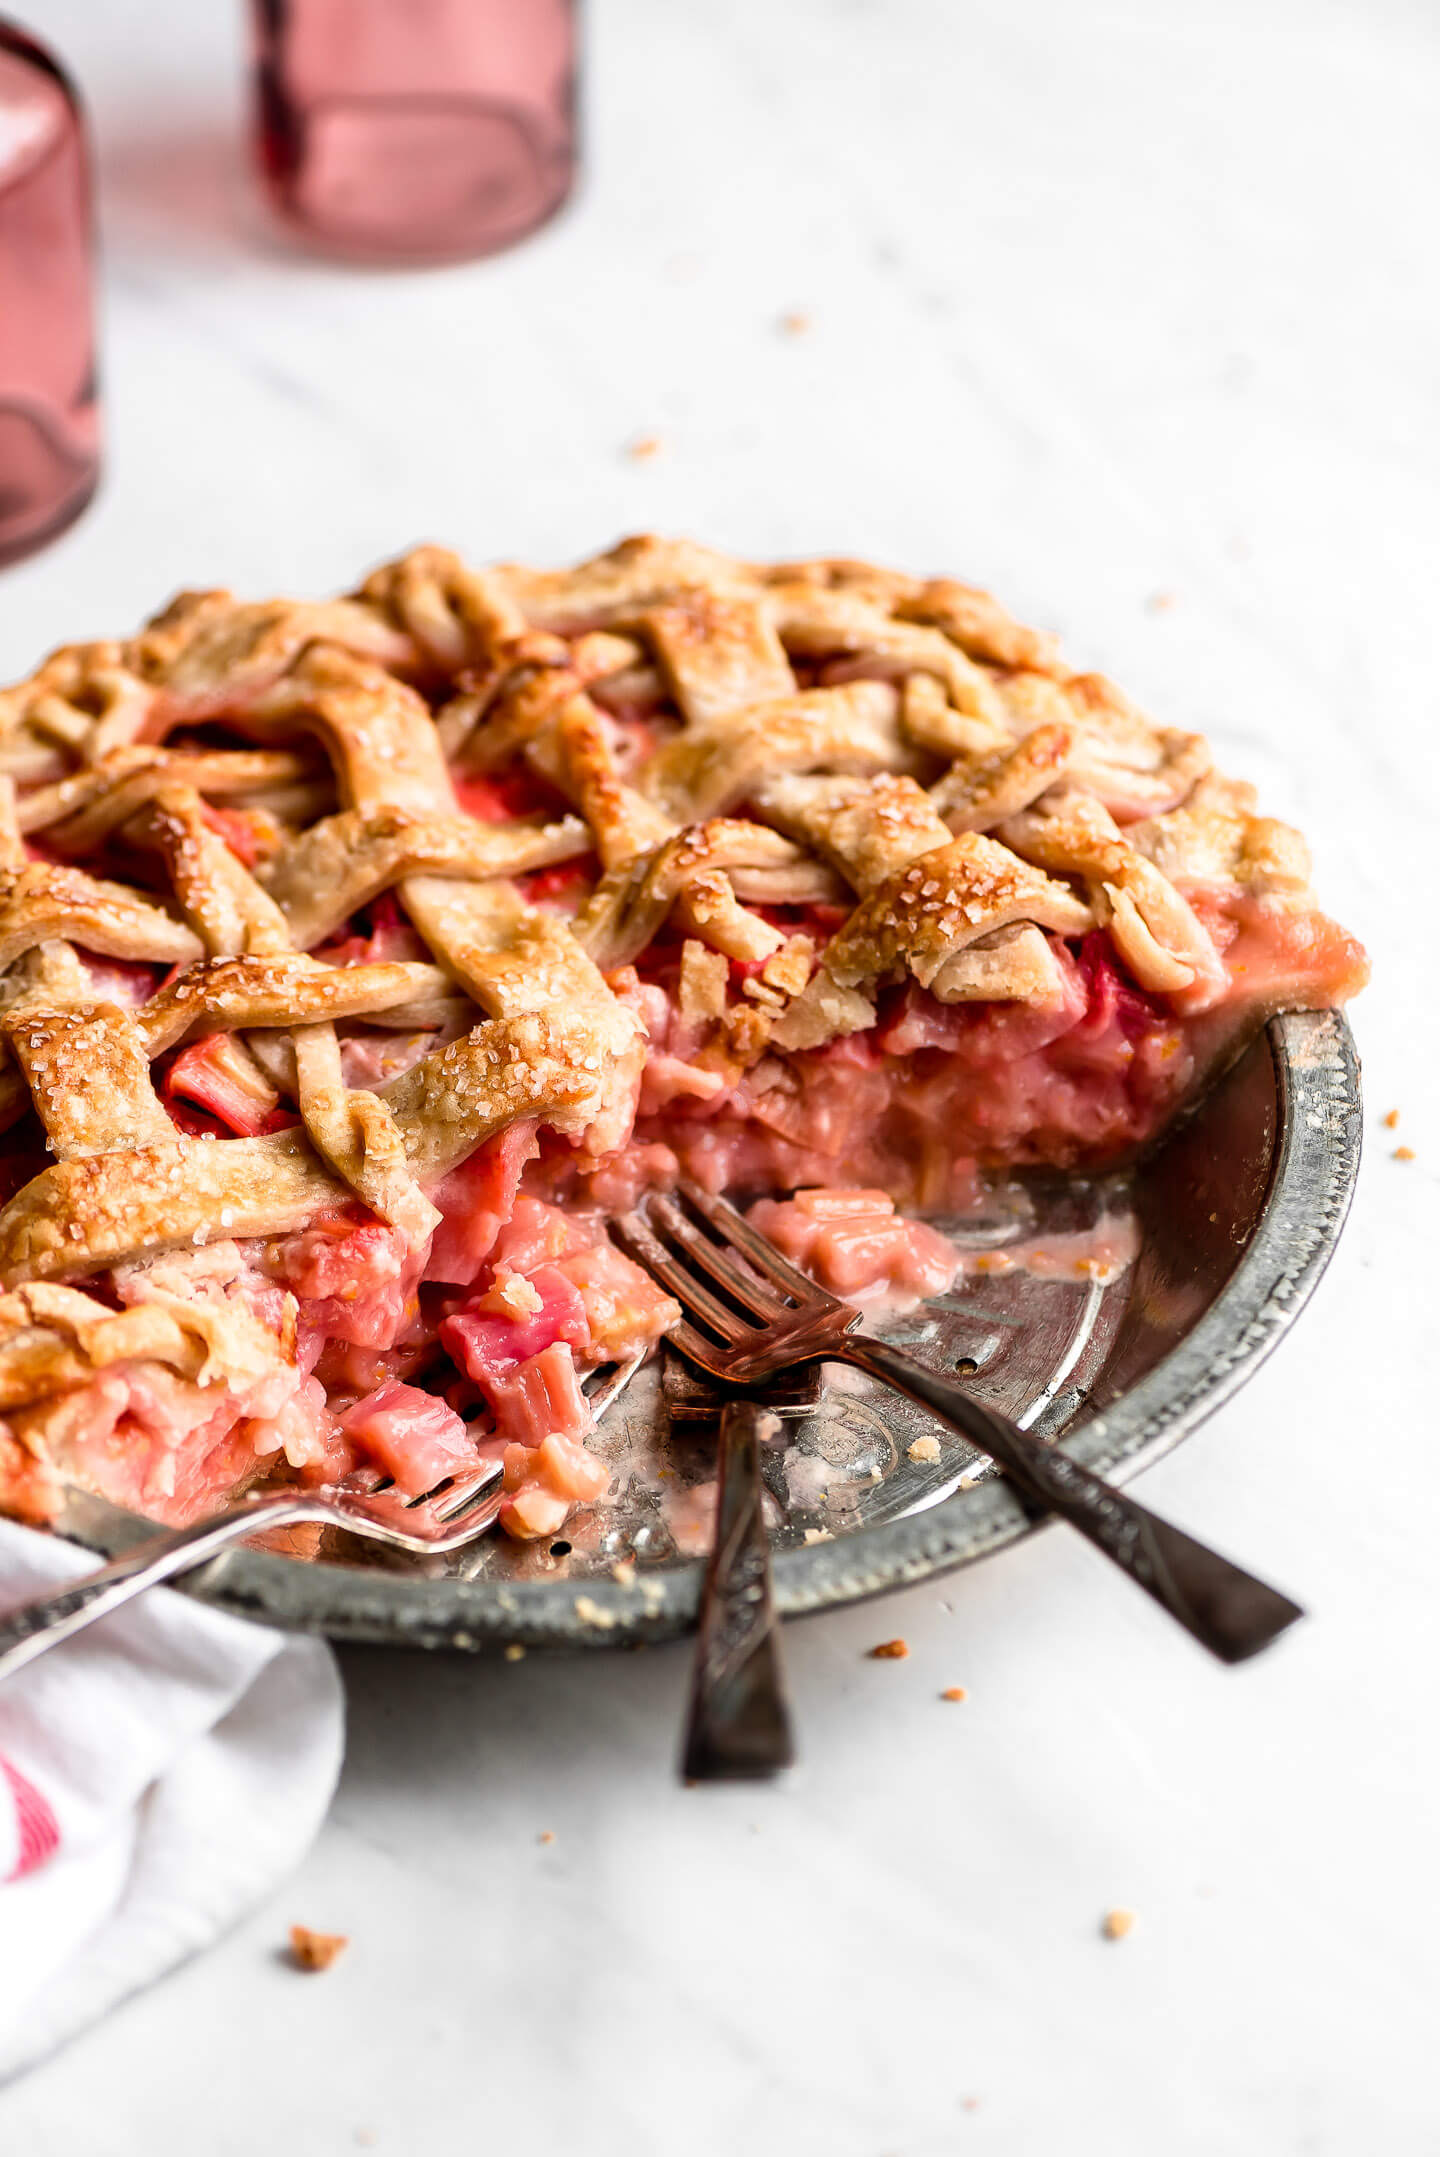 A Rhubarb Pie with slices taken out and forks resting in the pie tin.